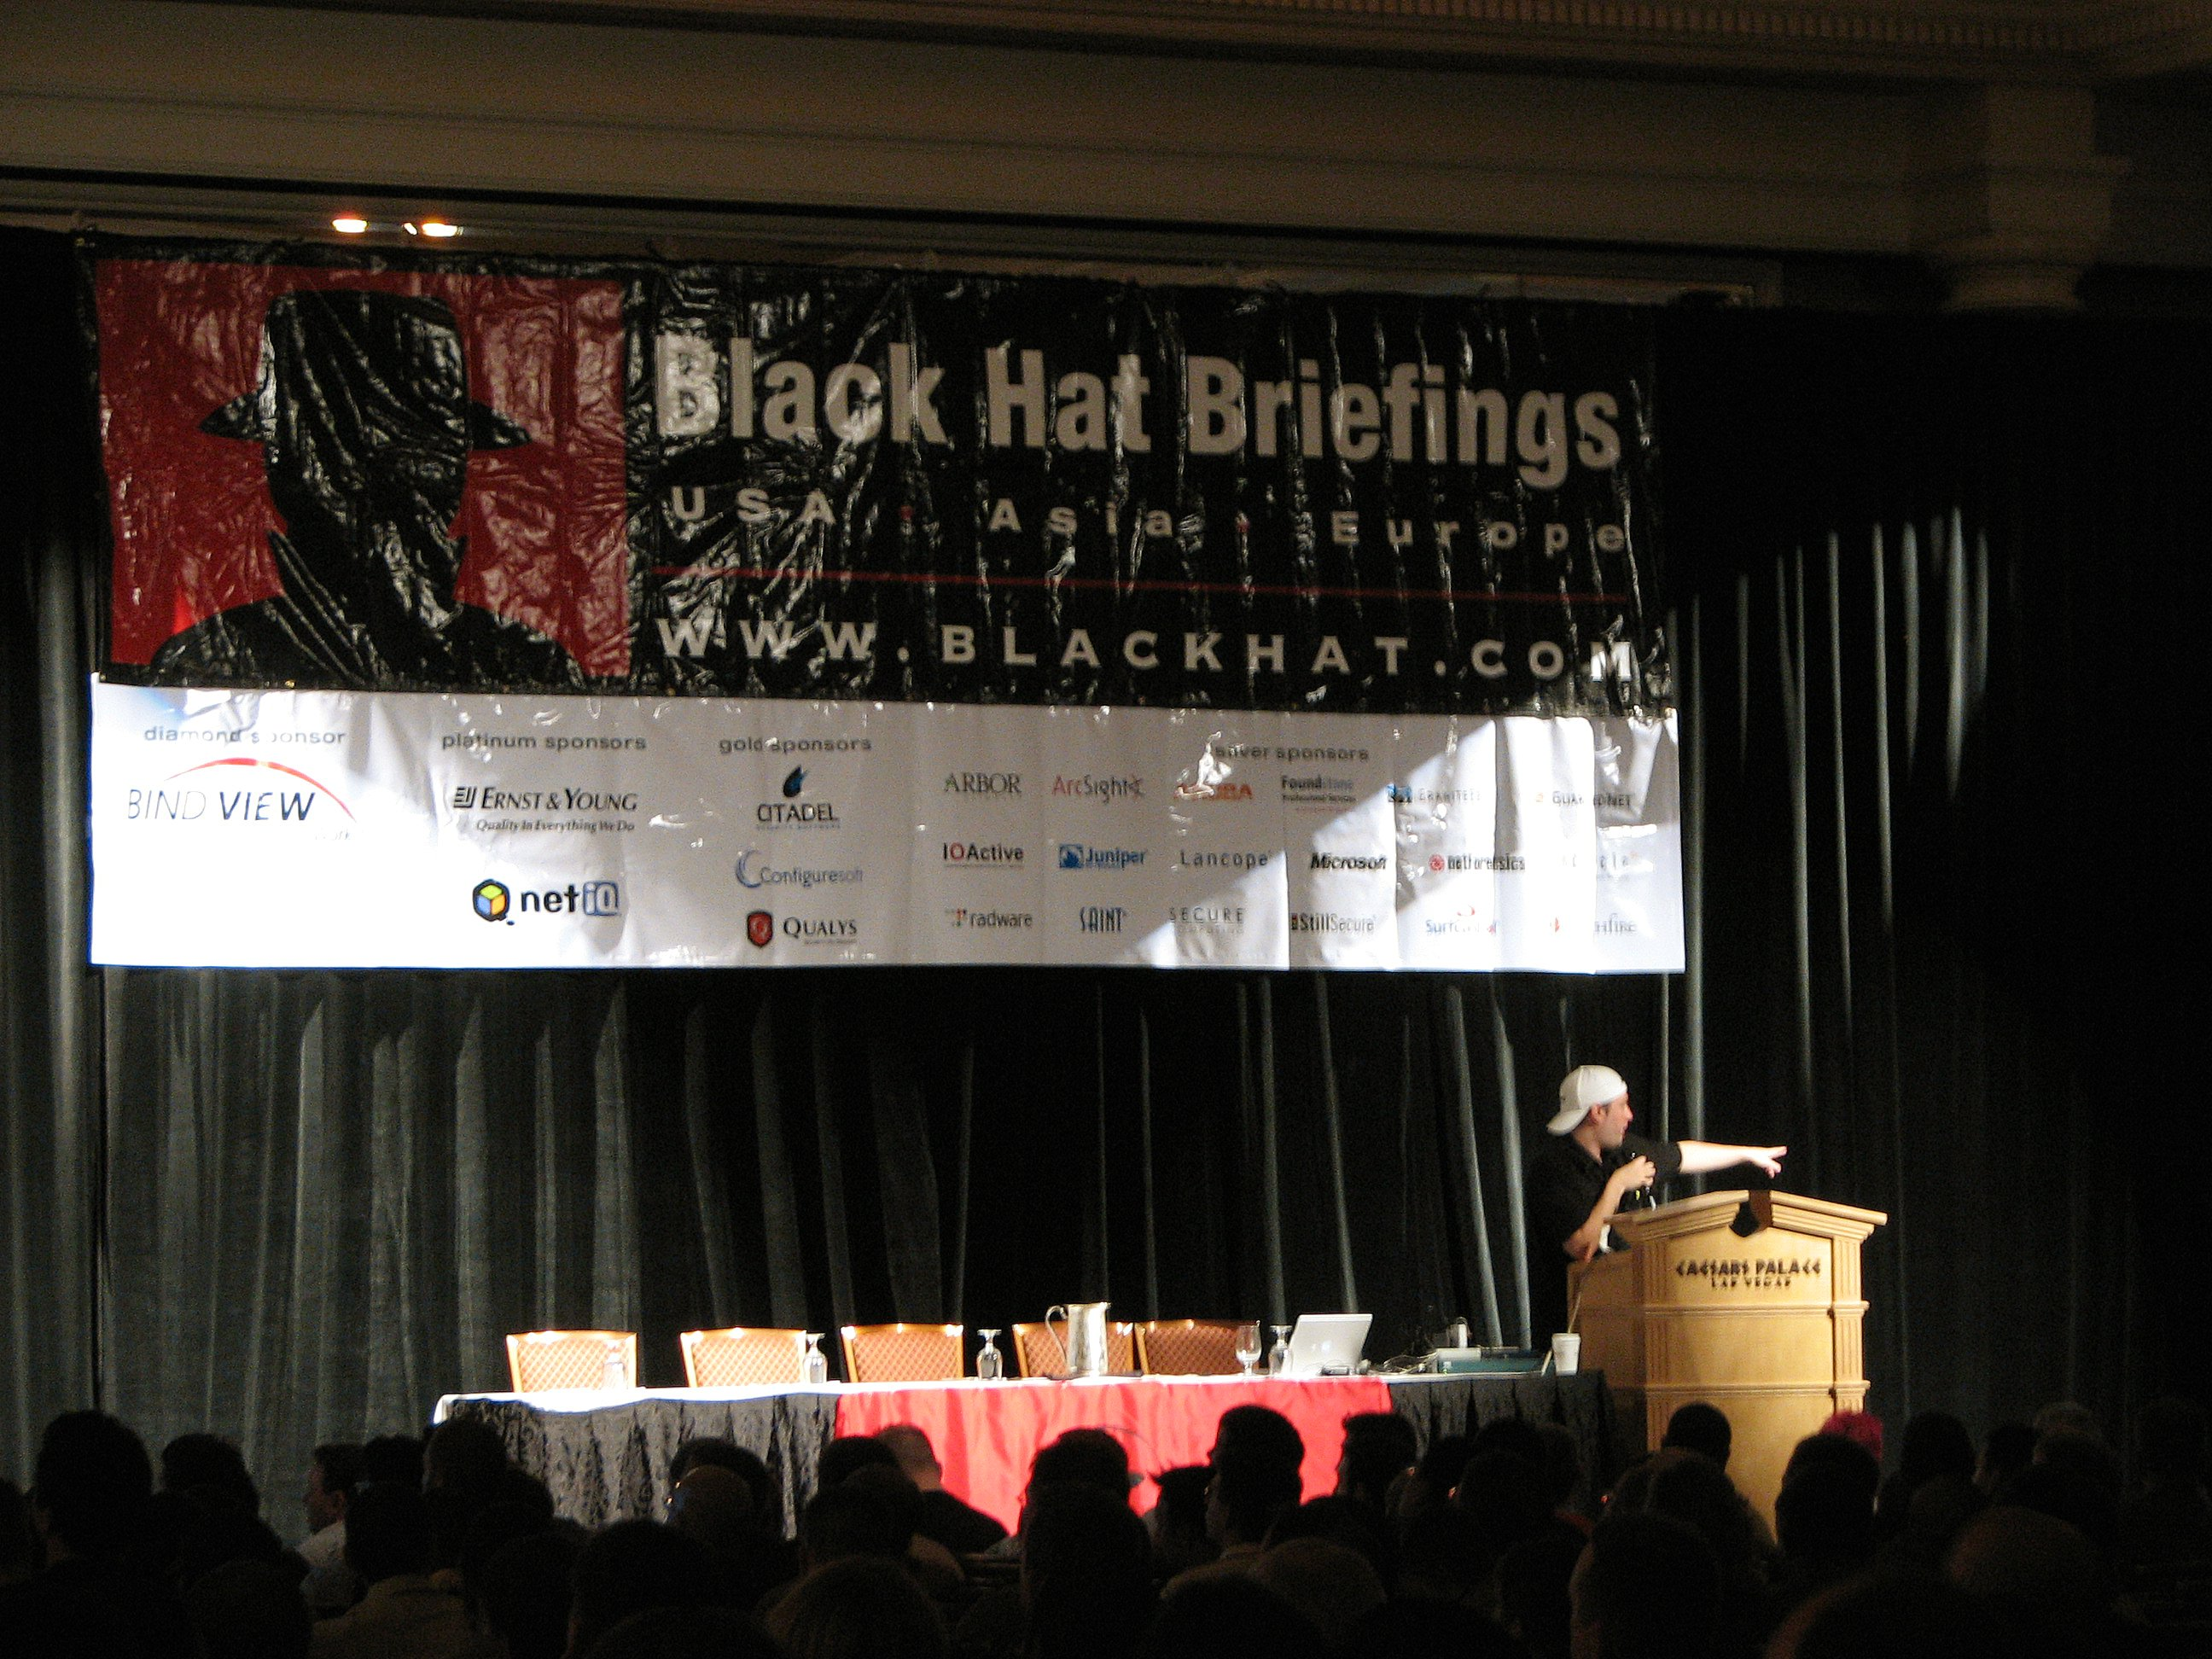 Black Hat Briefings - Wikipedia 236681986ff